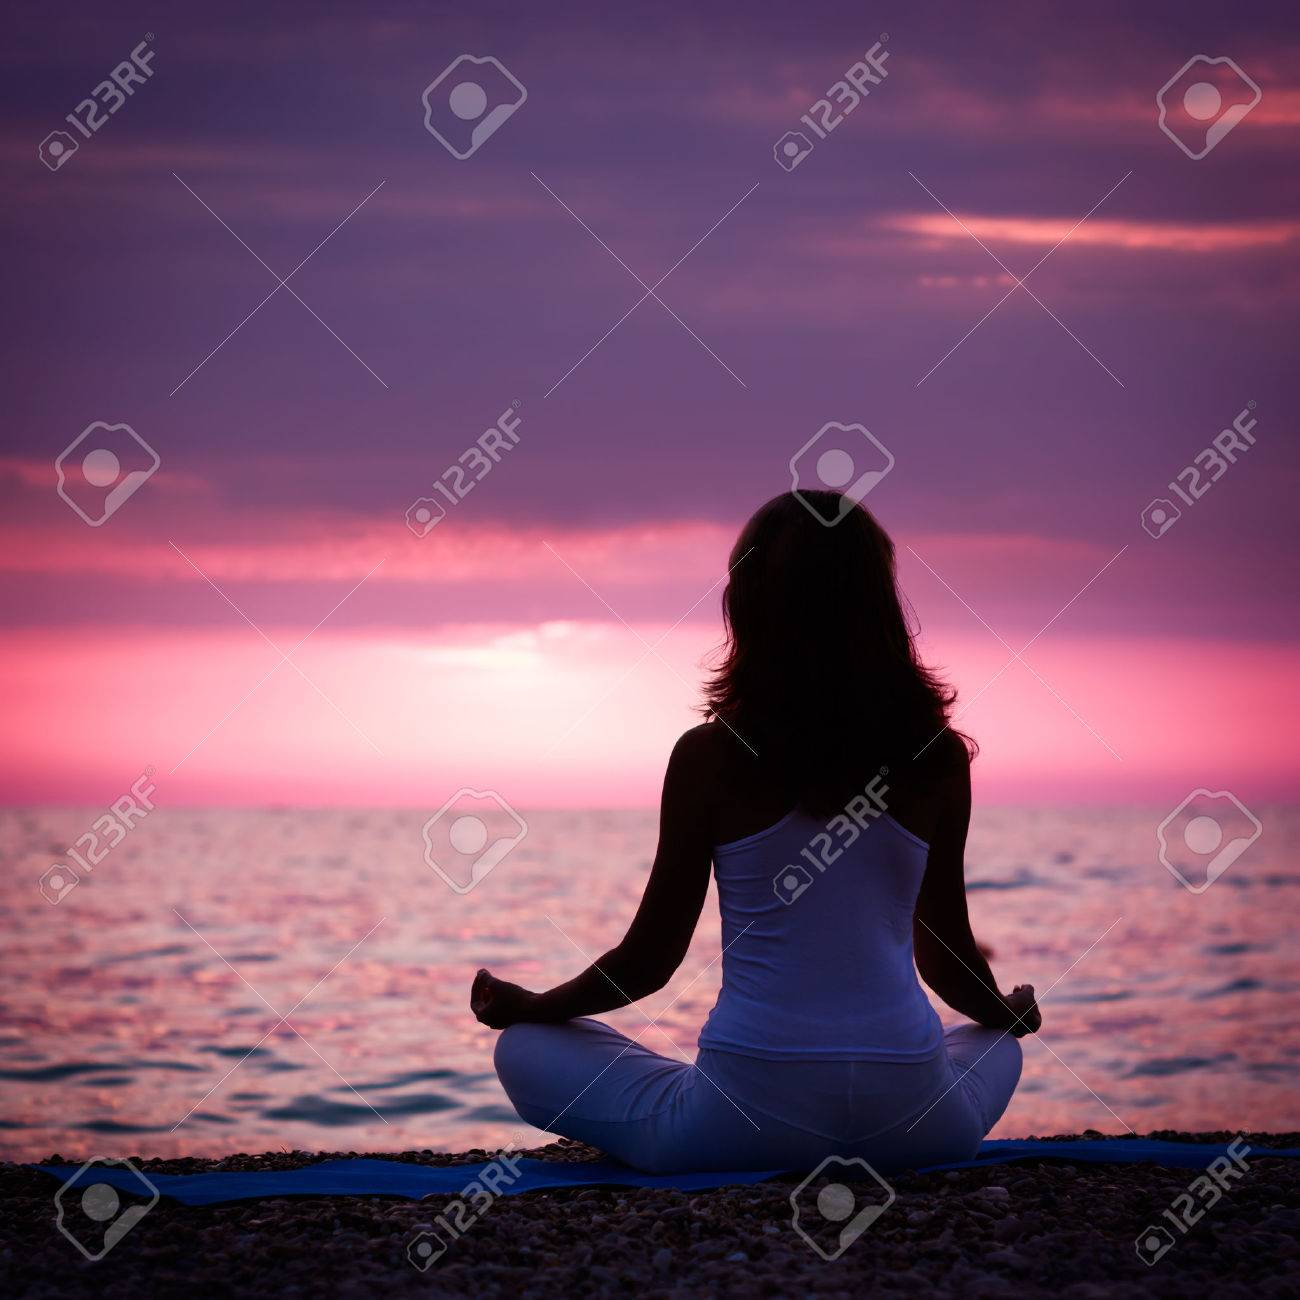 Silhouette of Woman Meditating in Lotus Position by the Sea at Sunset. Rear View. Nature Meditation Concept. - 38571906